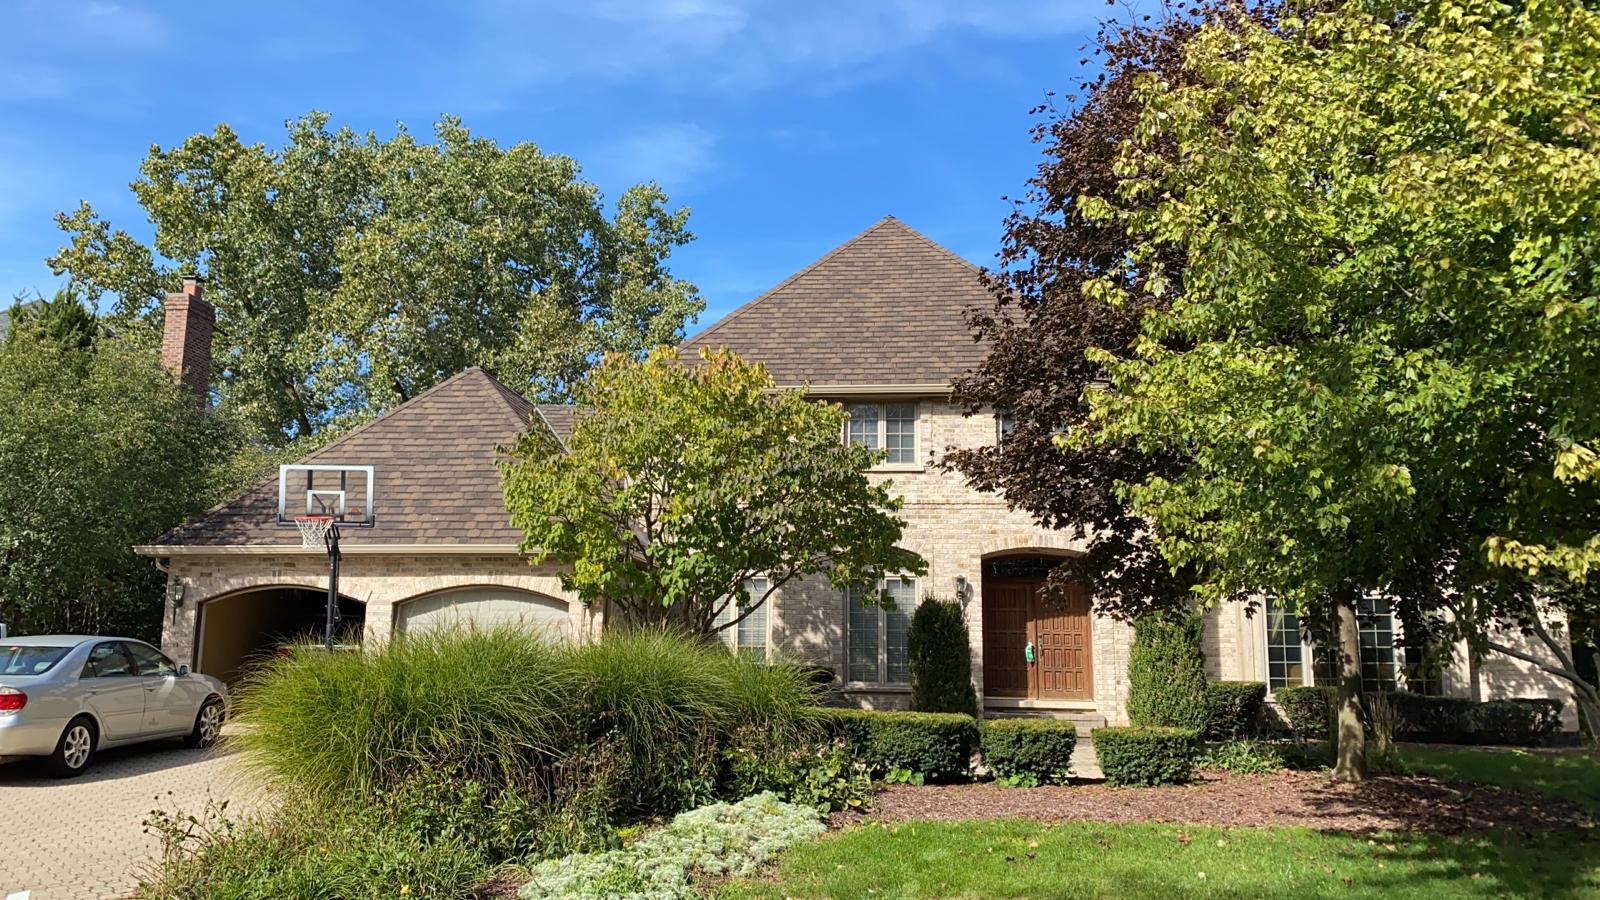 Burr Ridge, IL roof completed by Feze Roofing Inc.